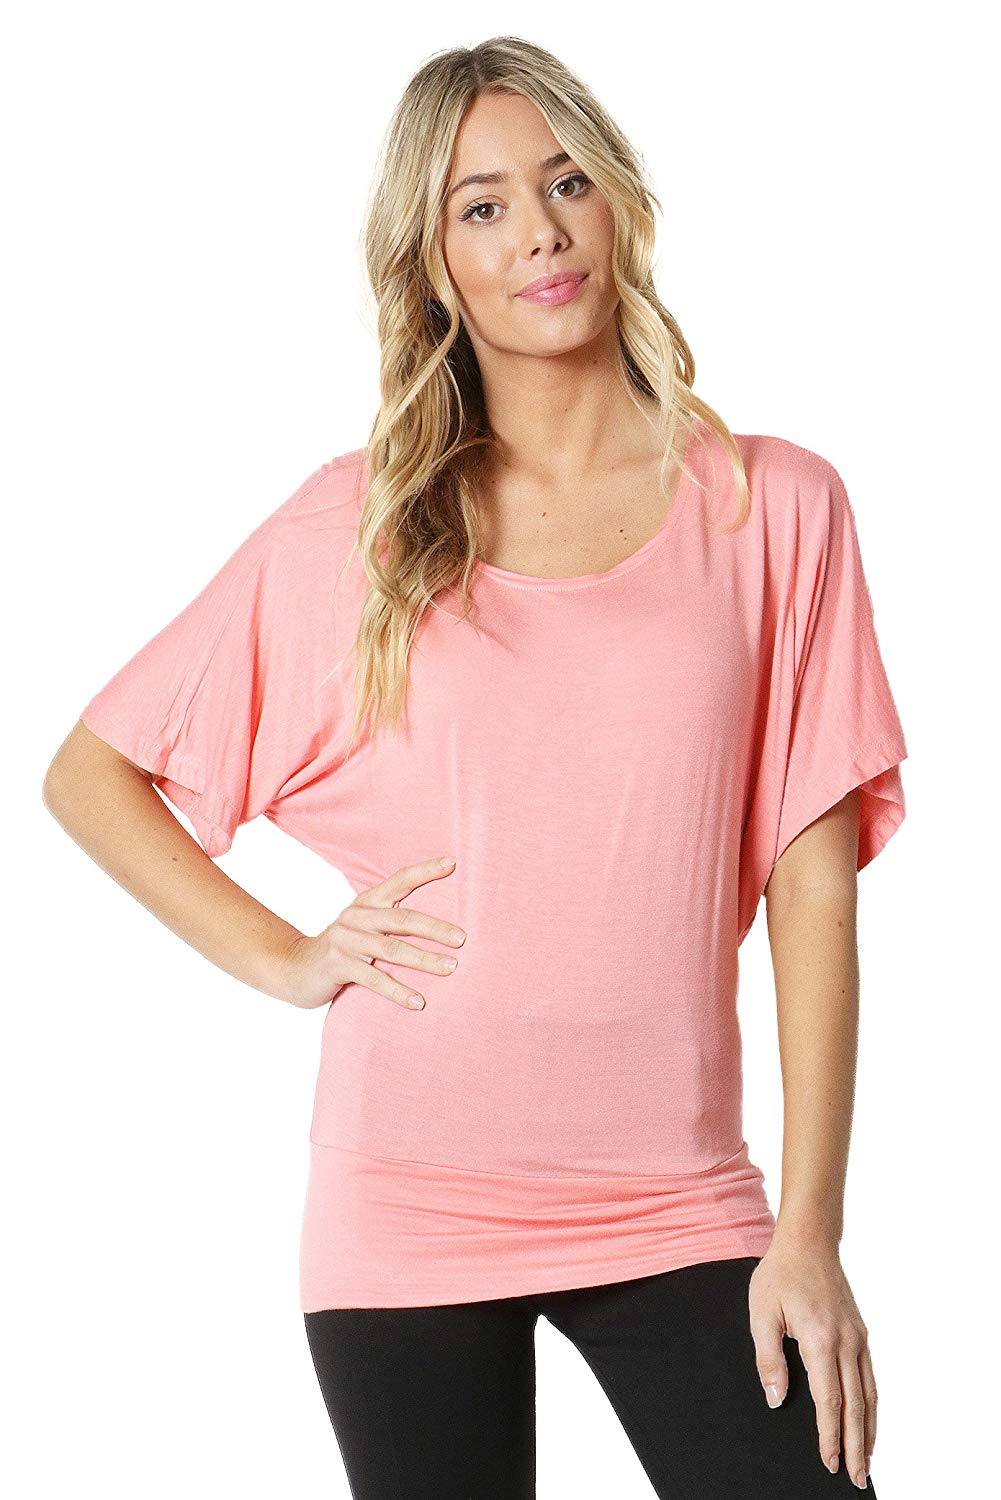 8724d5a5613c3 Get Quotations · Zenana Outfitters Round Neck Waist Band Dolman Top